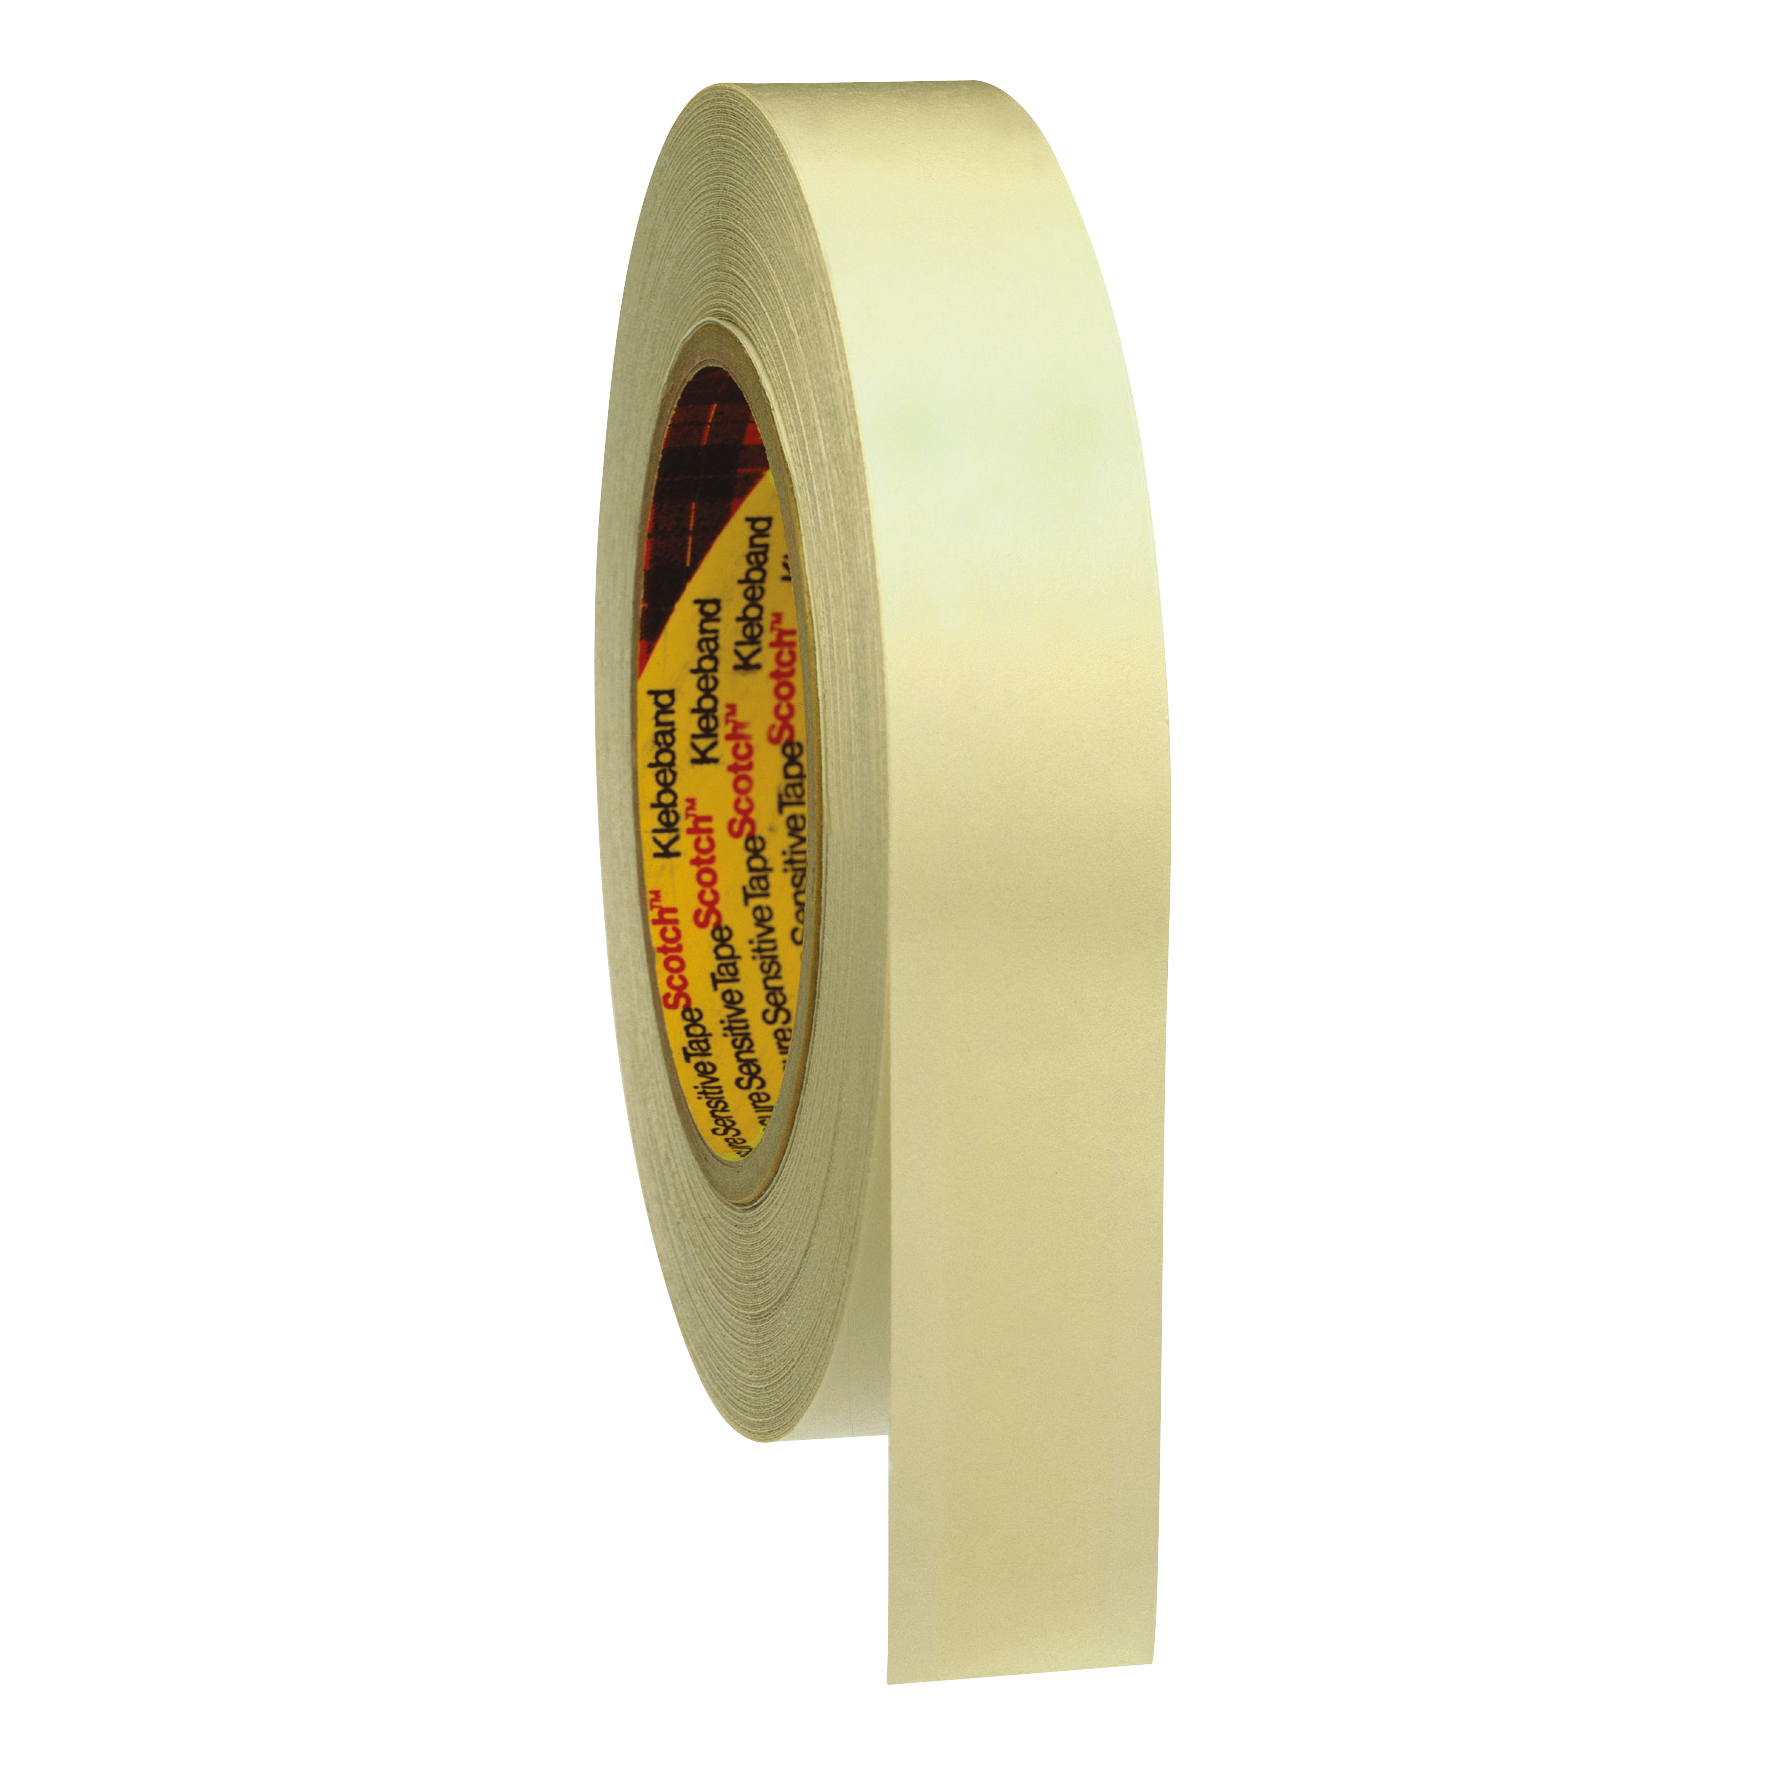 Scotch Artists Tape Double Sided with Liner for Mounting and Holding 25mmx33m Ref DS2533 Pack 6